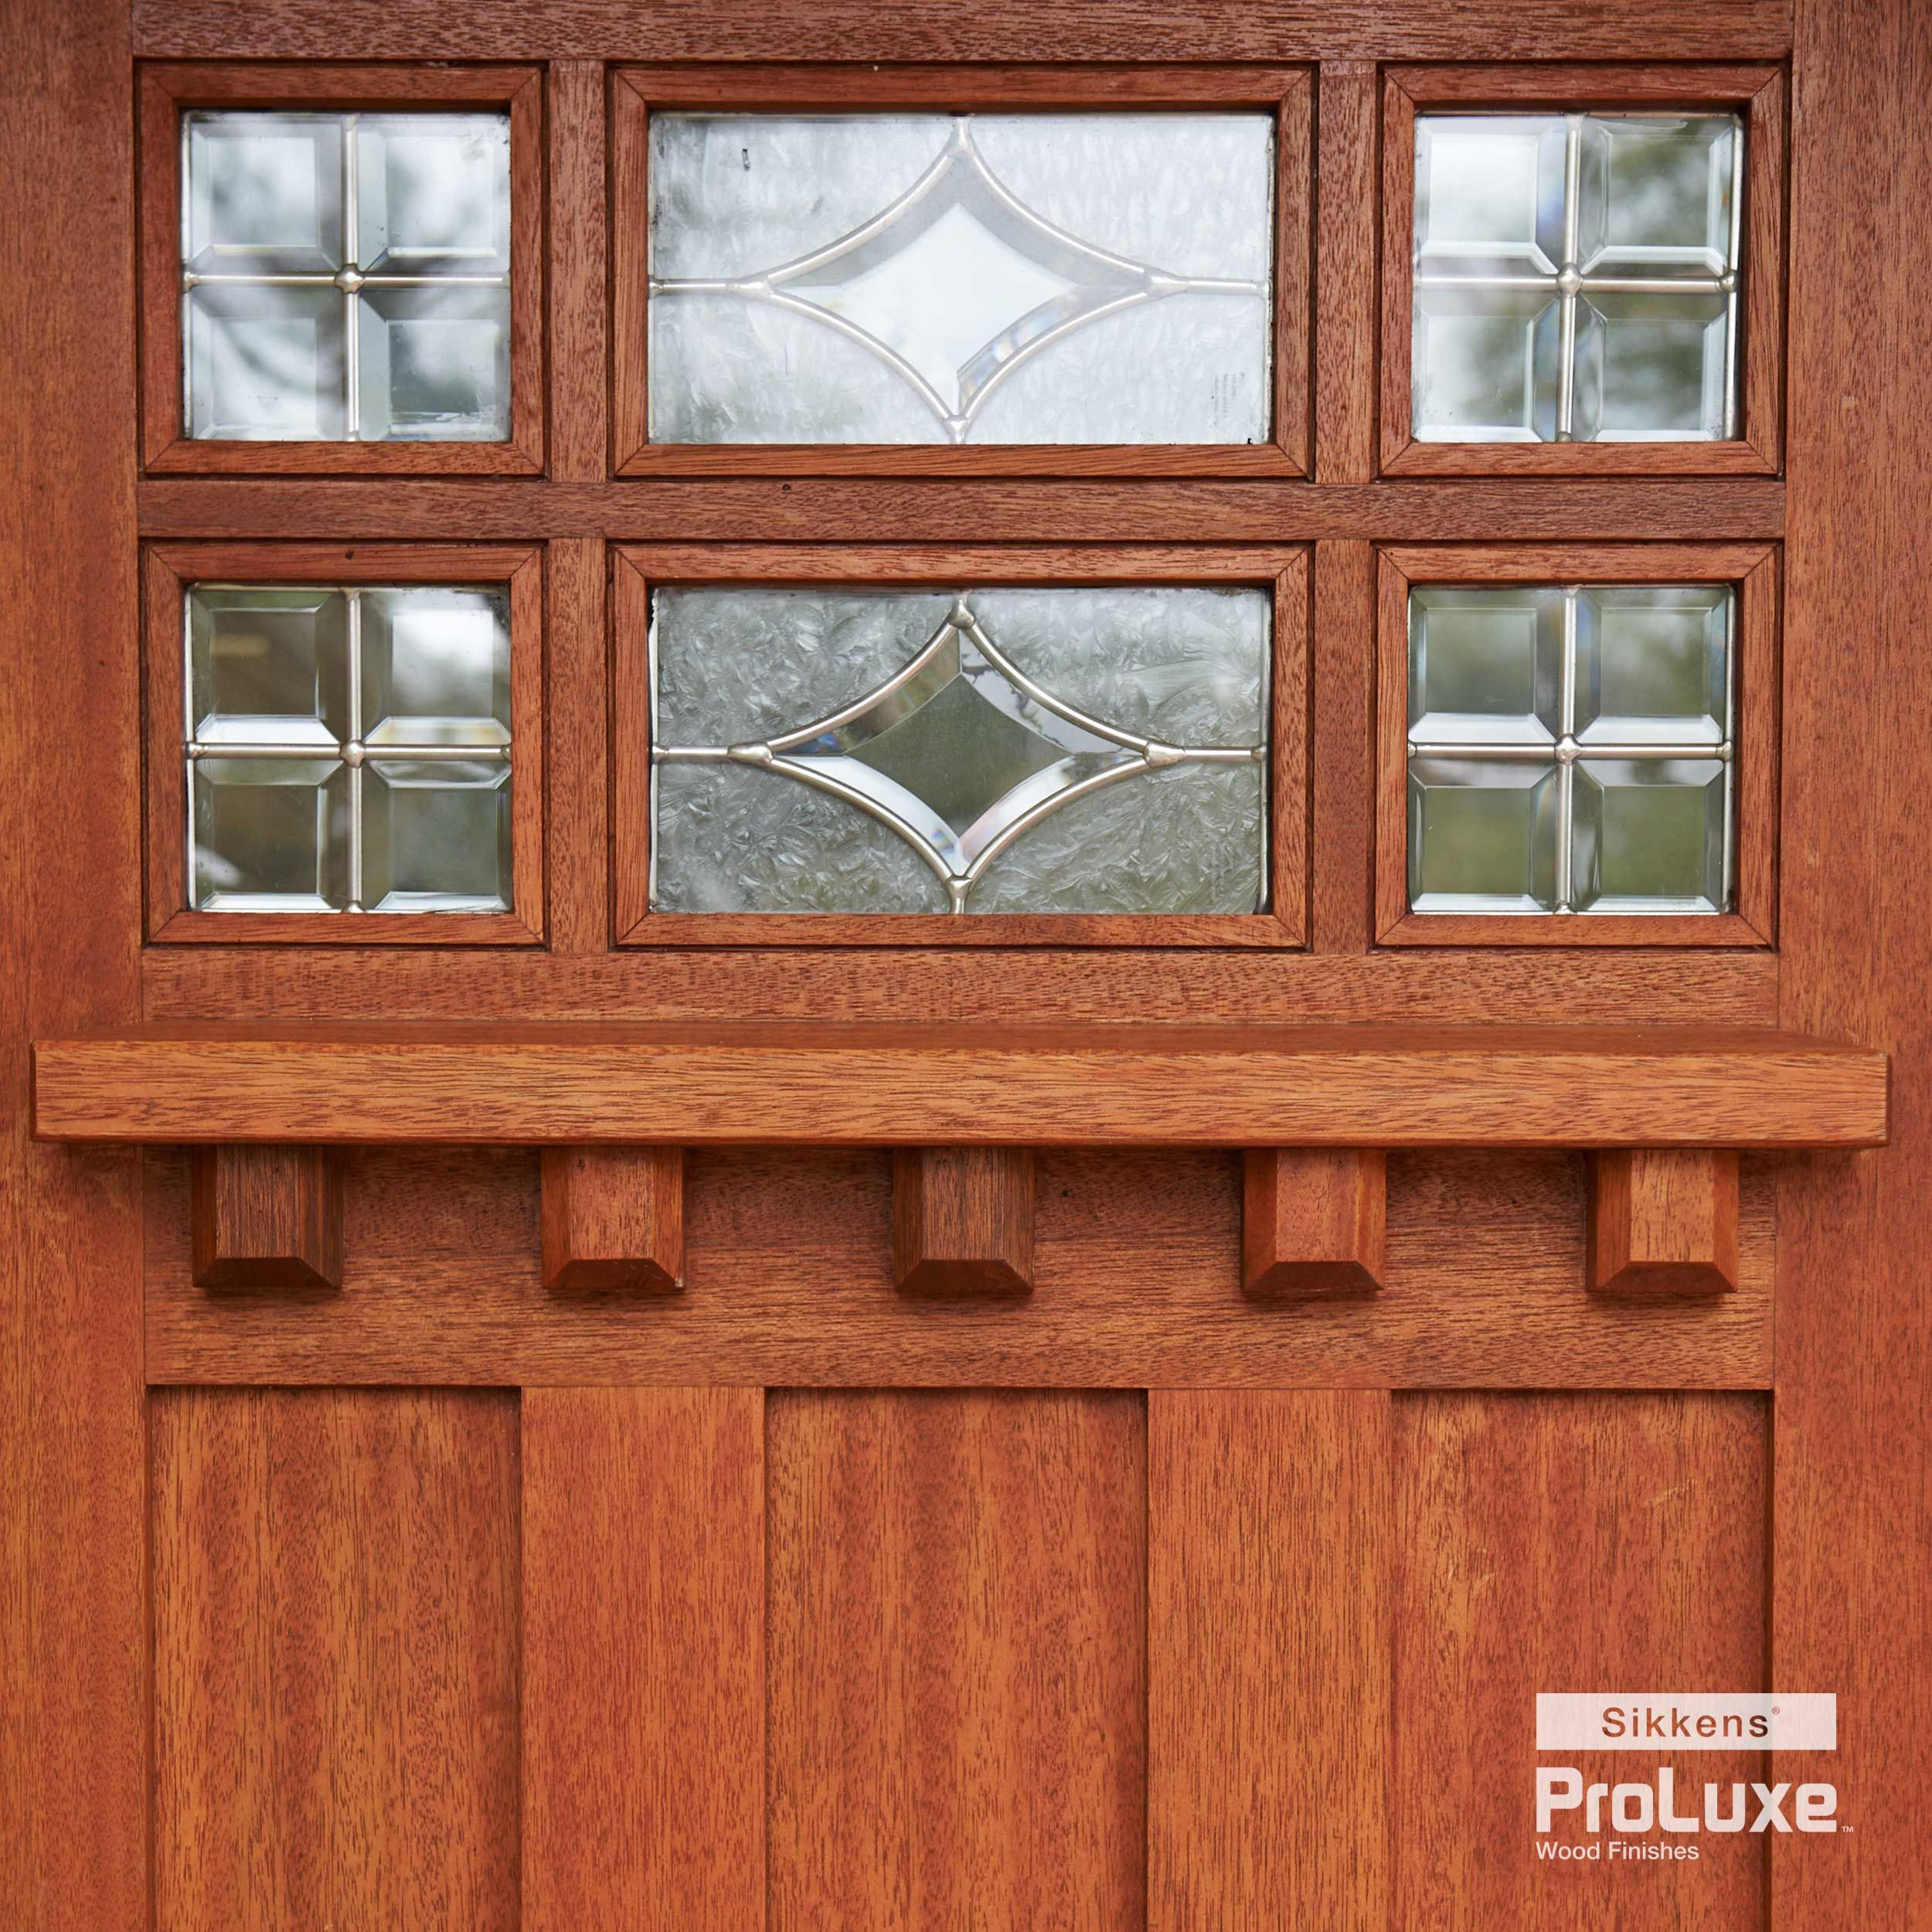 Beautiful Details On A Wooden Front Door Featuring Sikkens